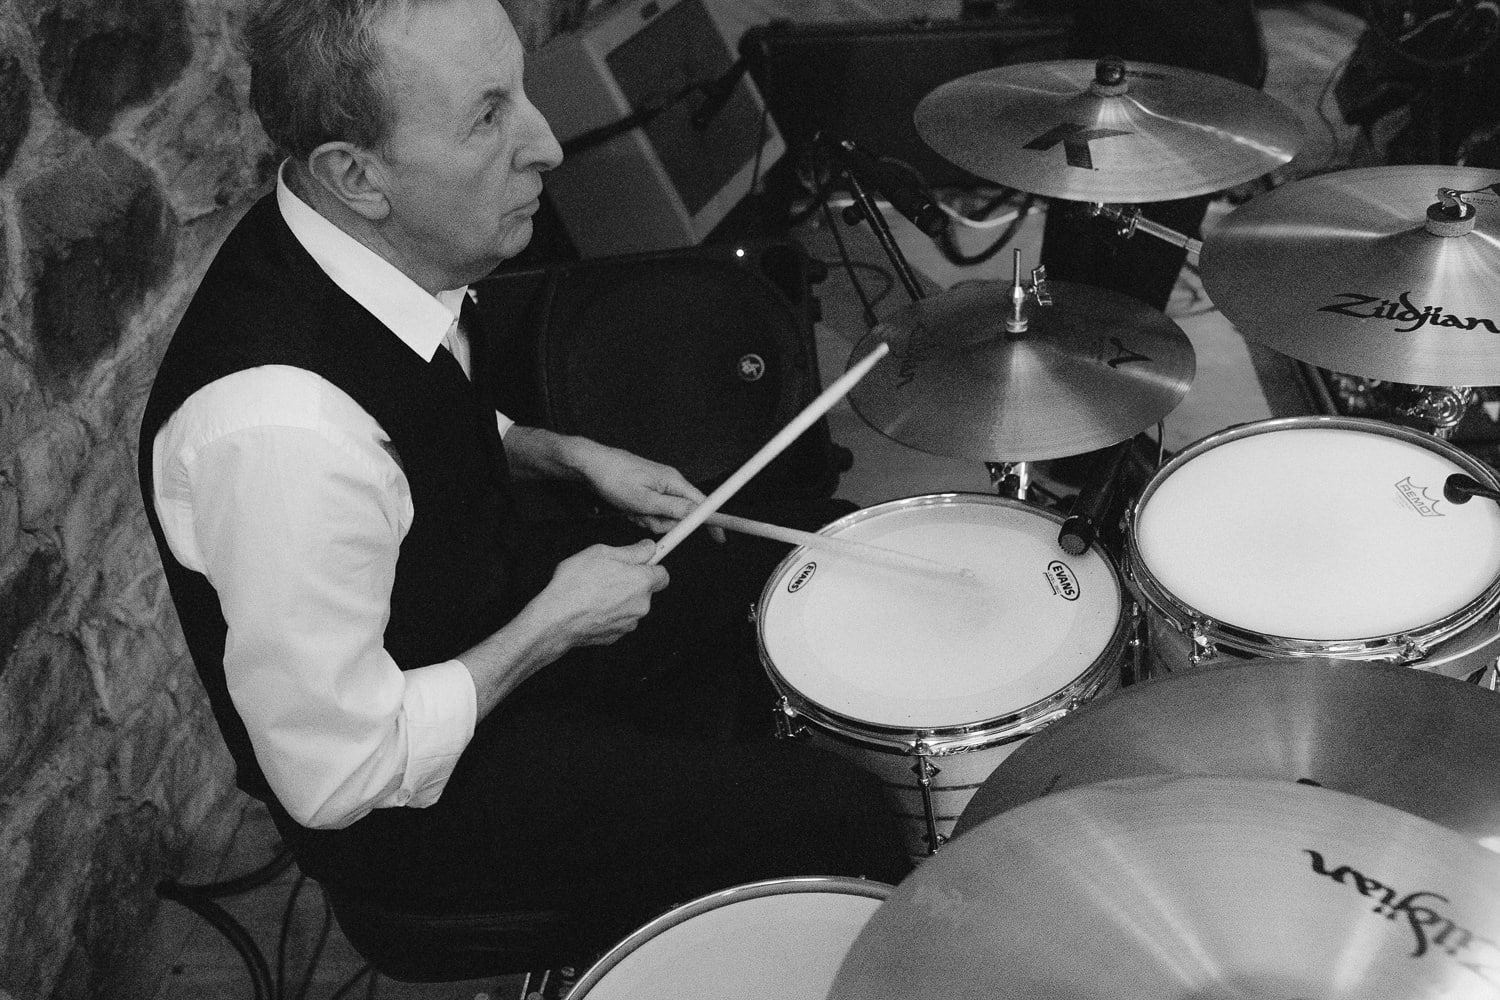 Man Playing Drums With Band